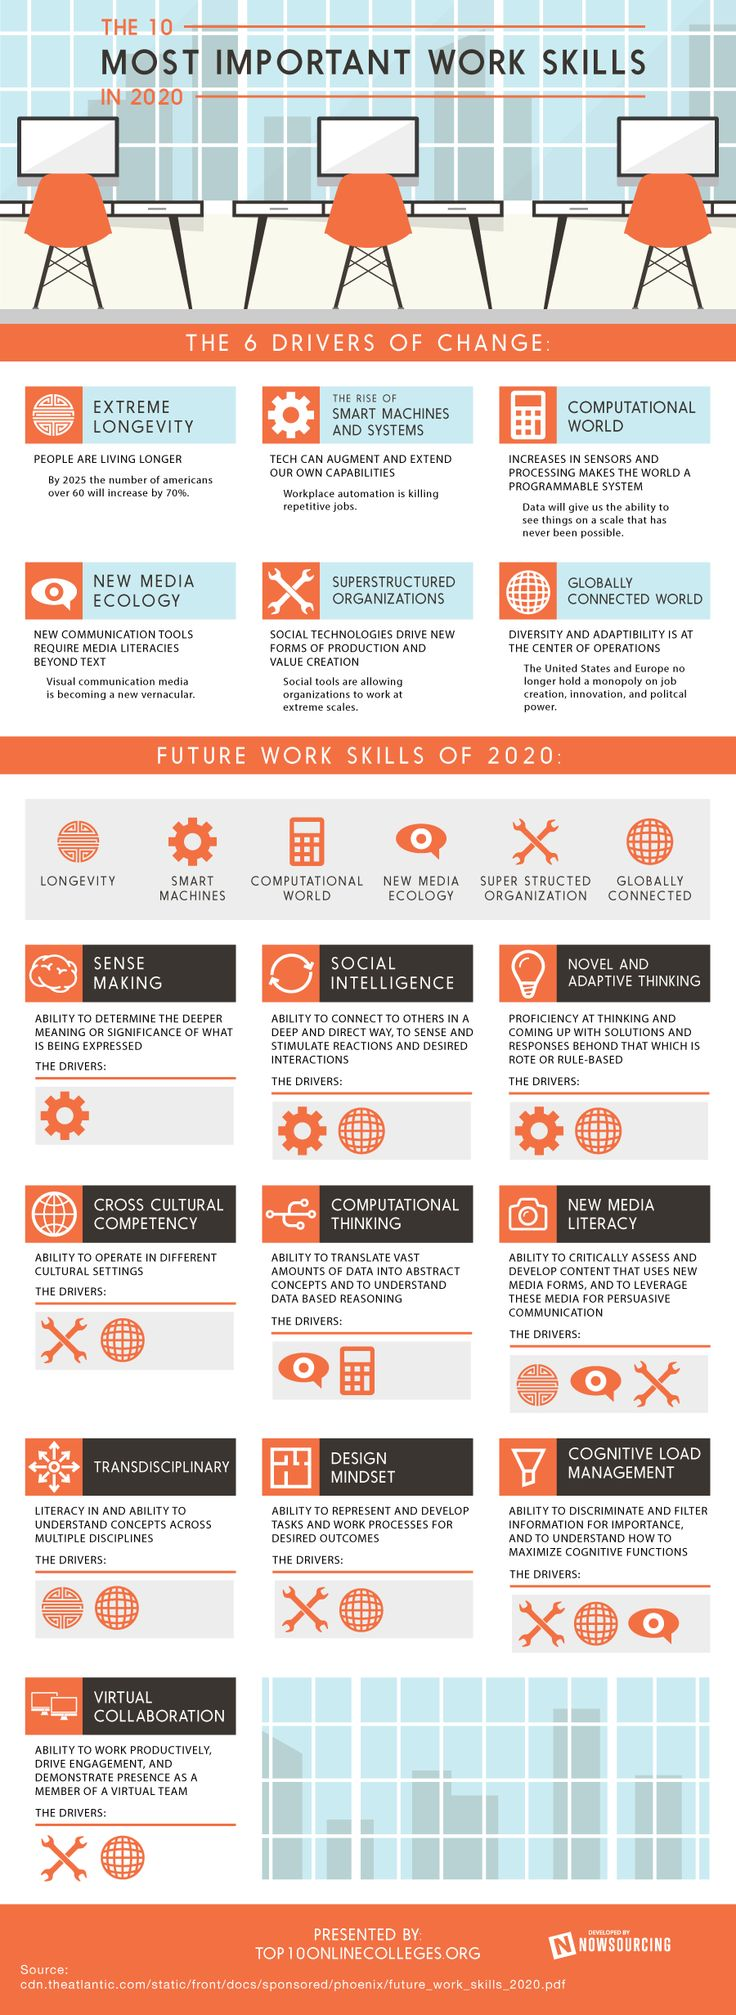 http://webmag.co/the-10-most-important-work-skills-in-2020/